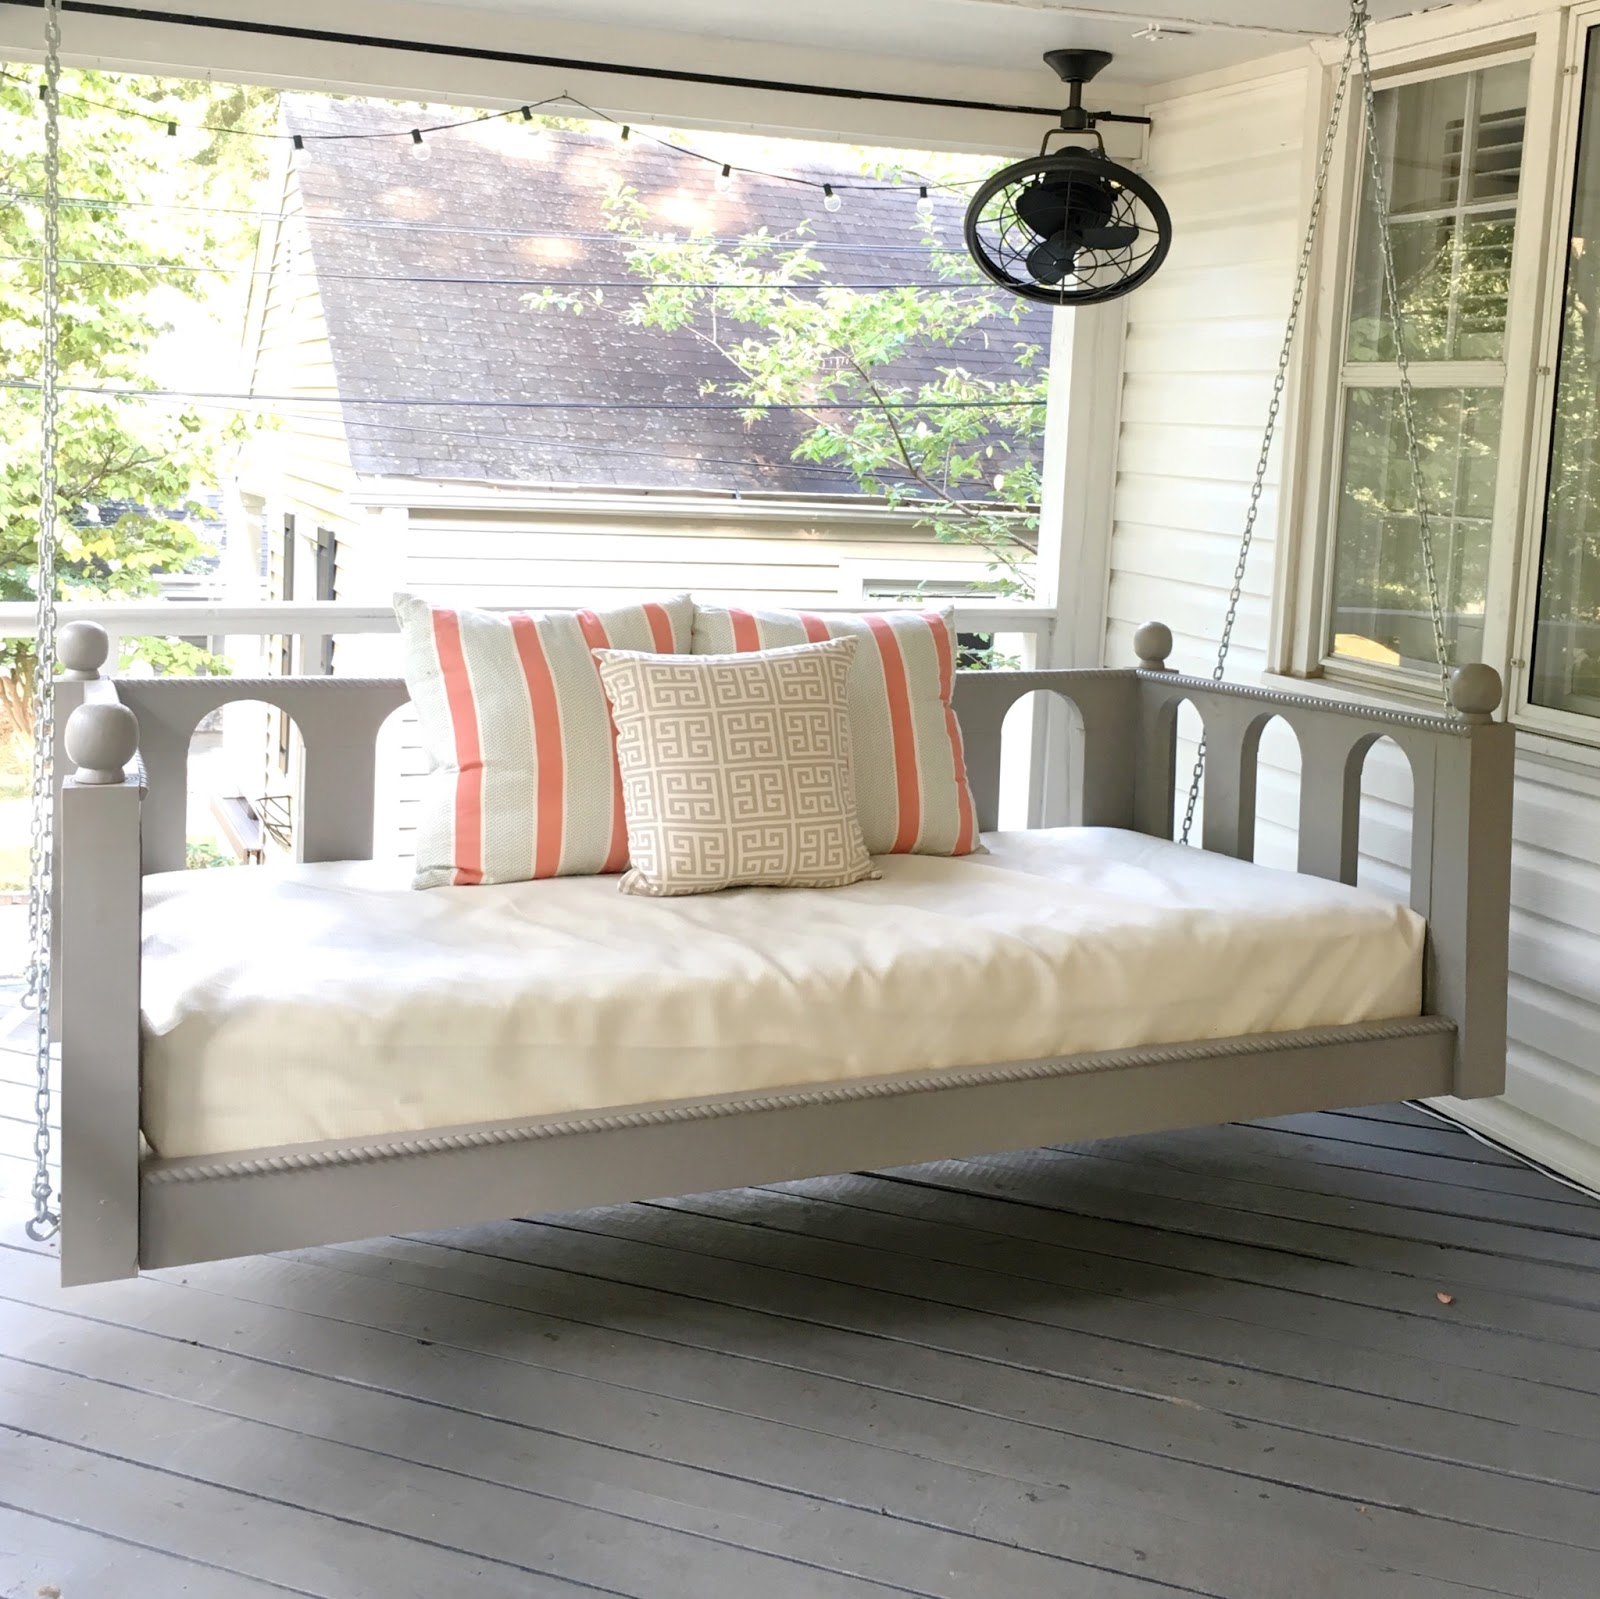 a creative day: PORCH BED SWINGS